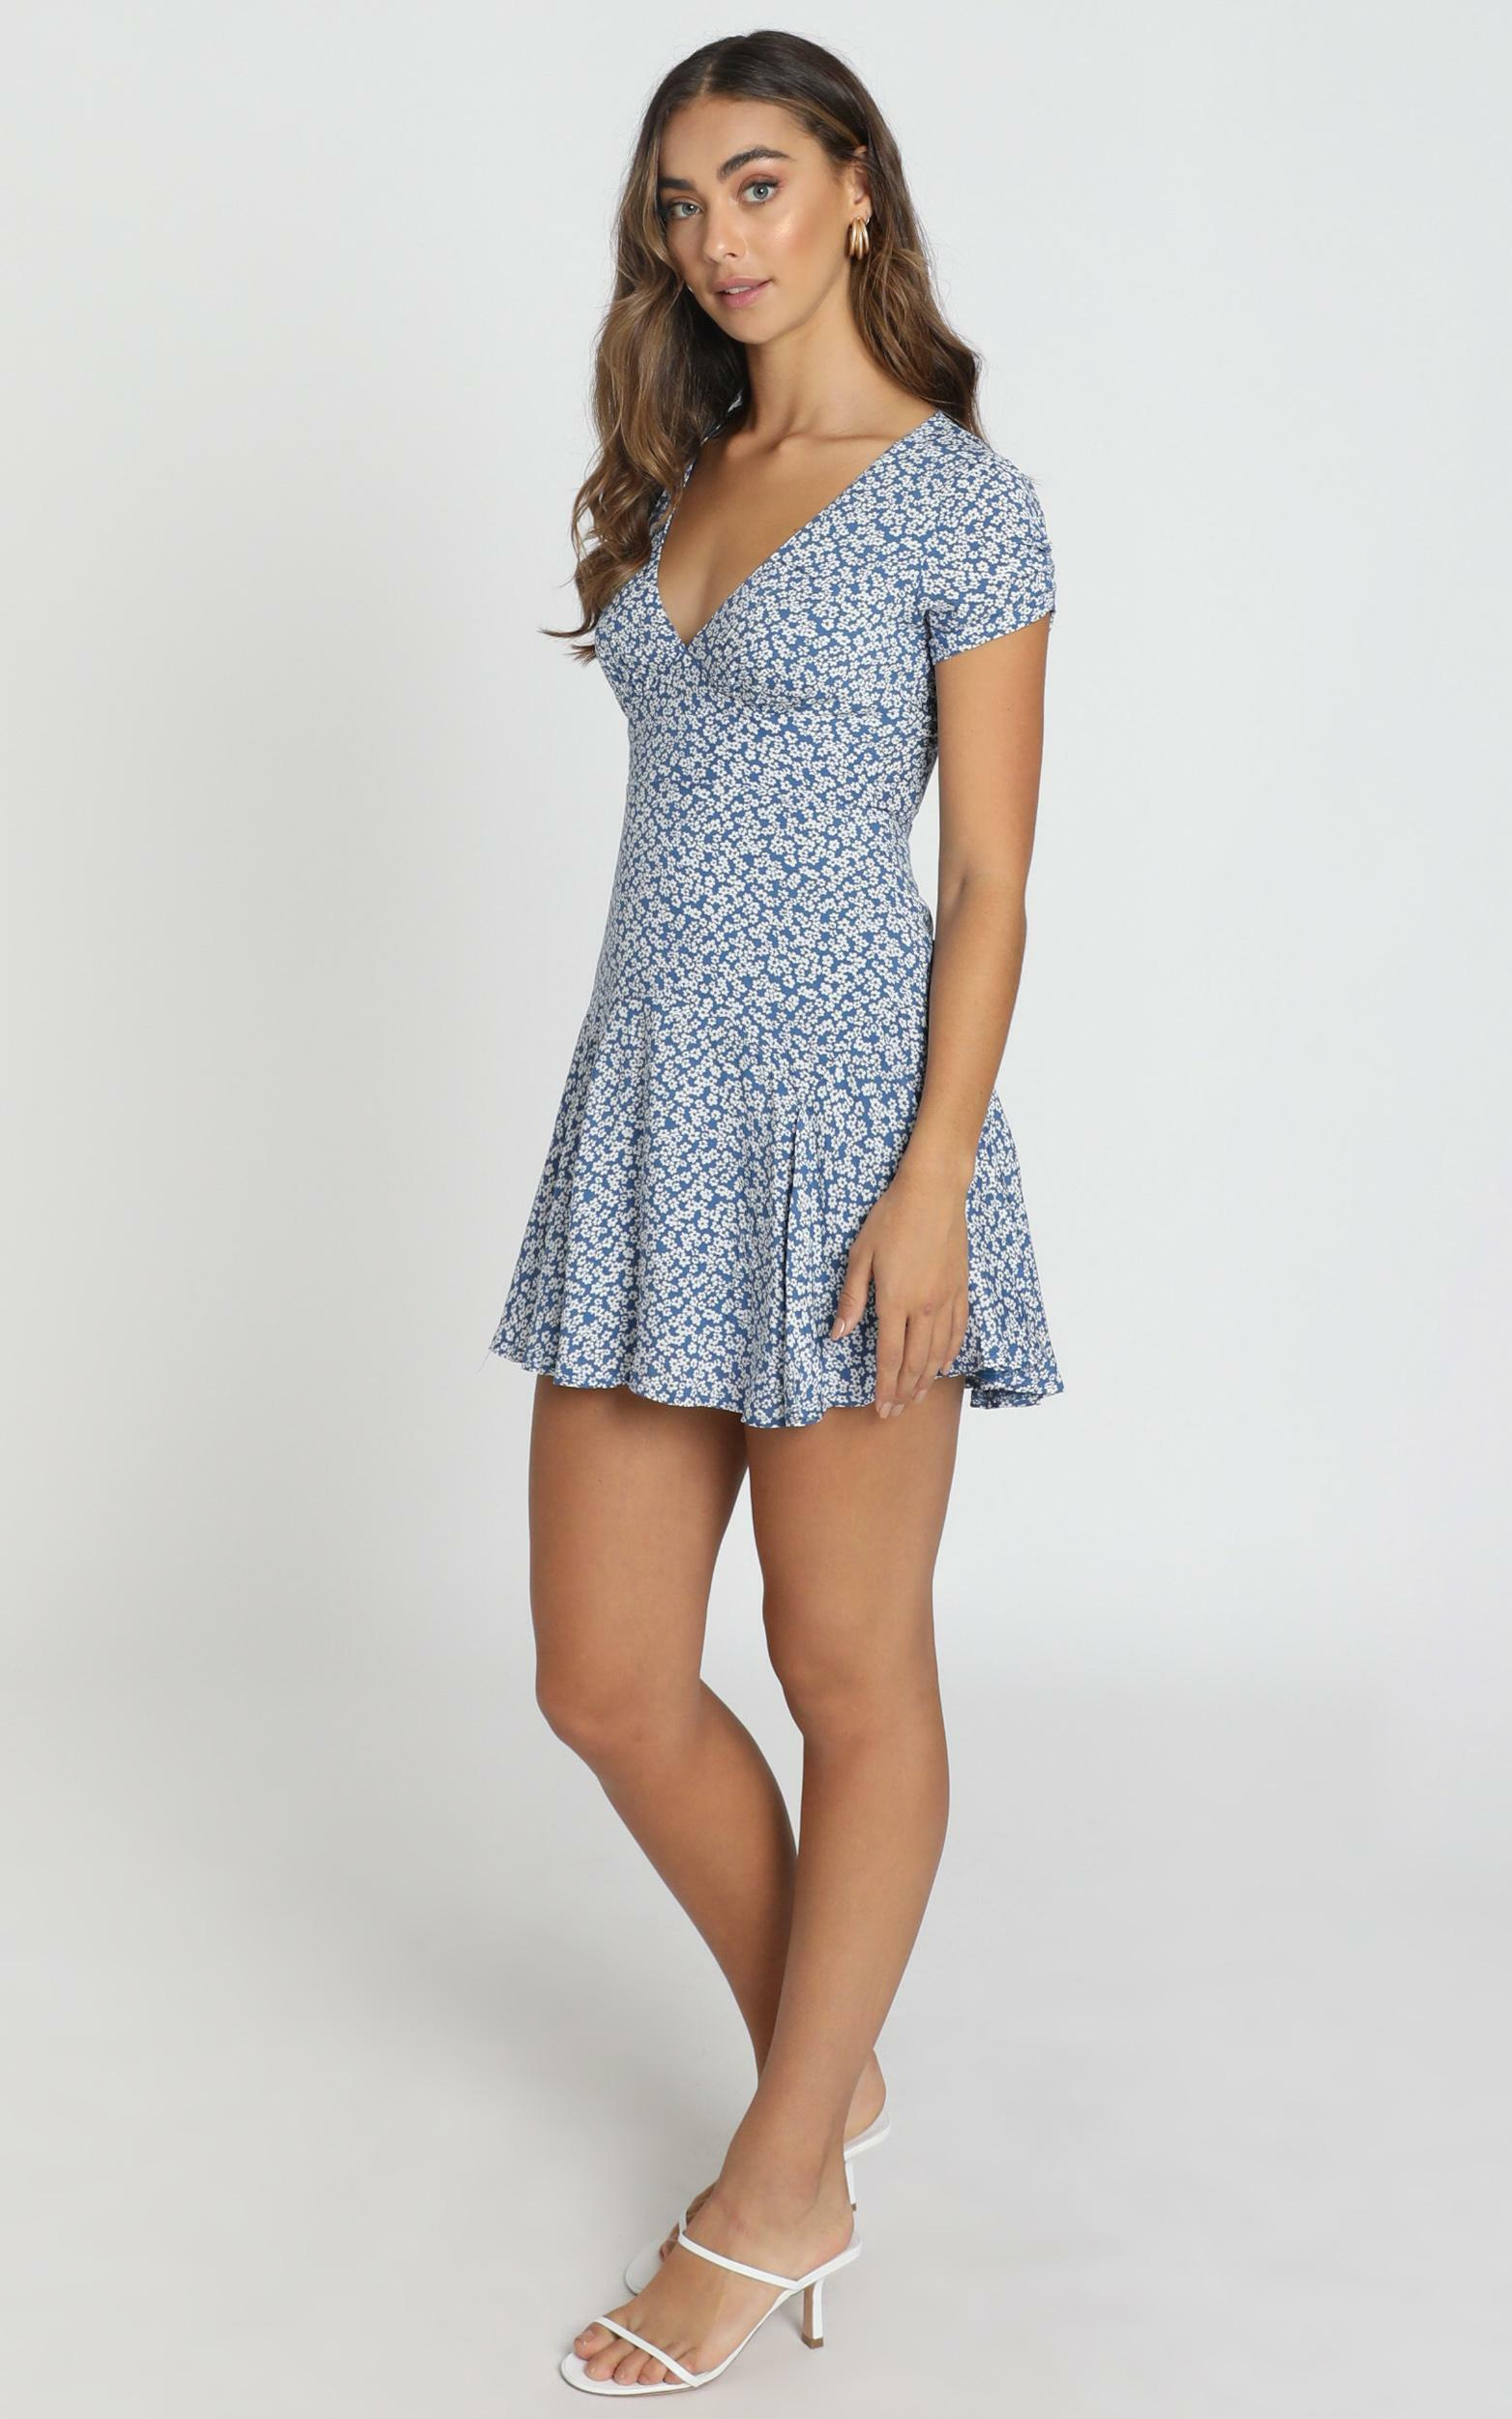 Florida Floral Mini Dress in navy floral - 6 (XS), Navy, hi-res image number null